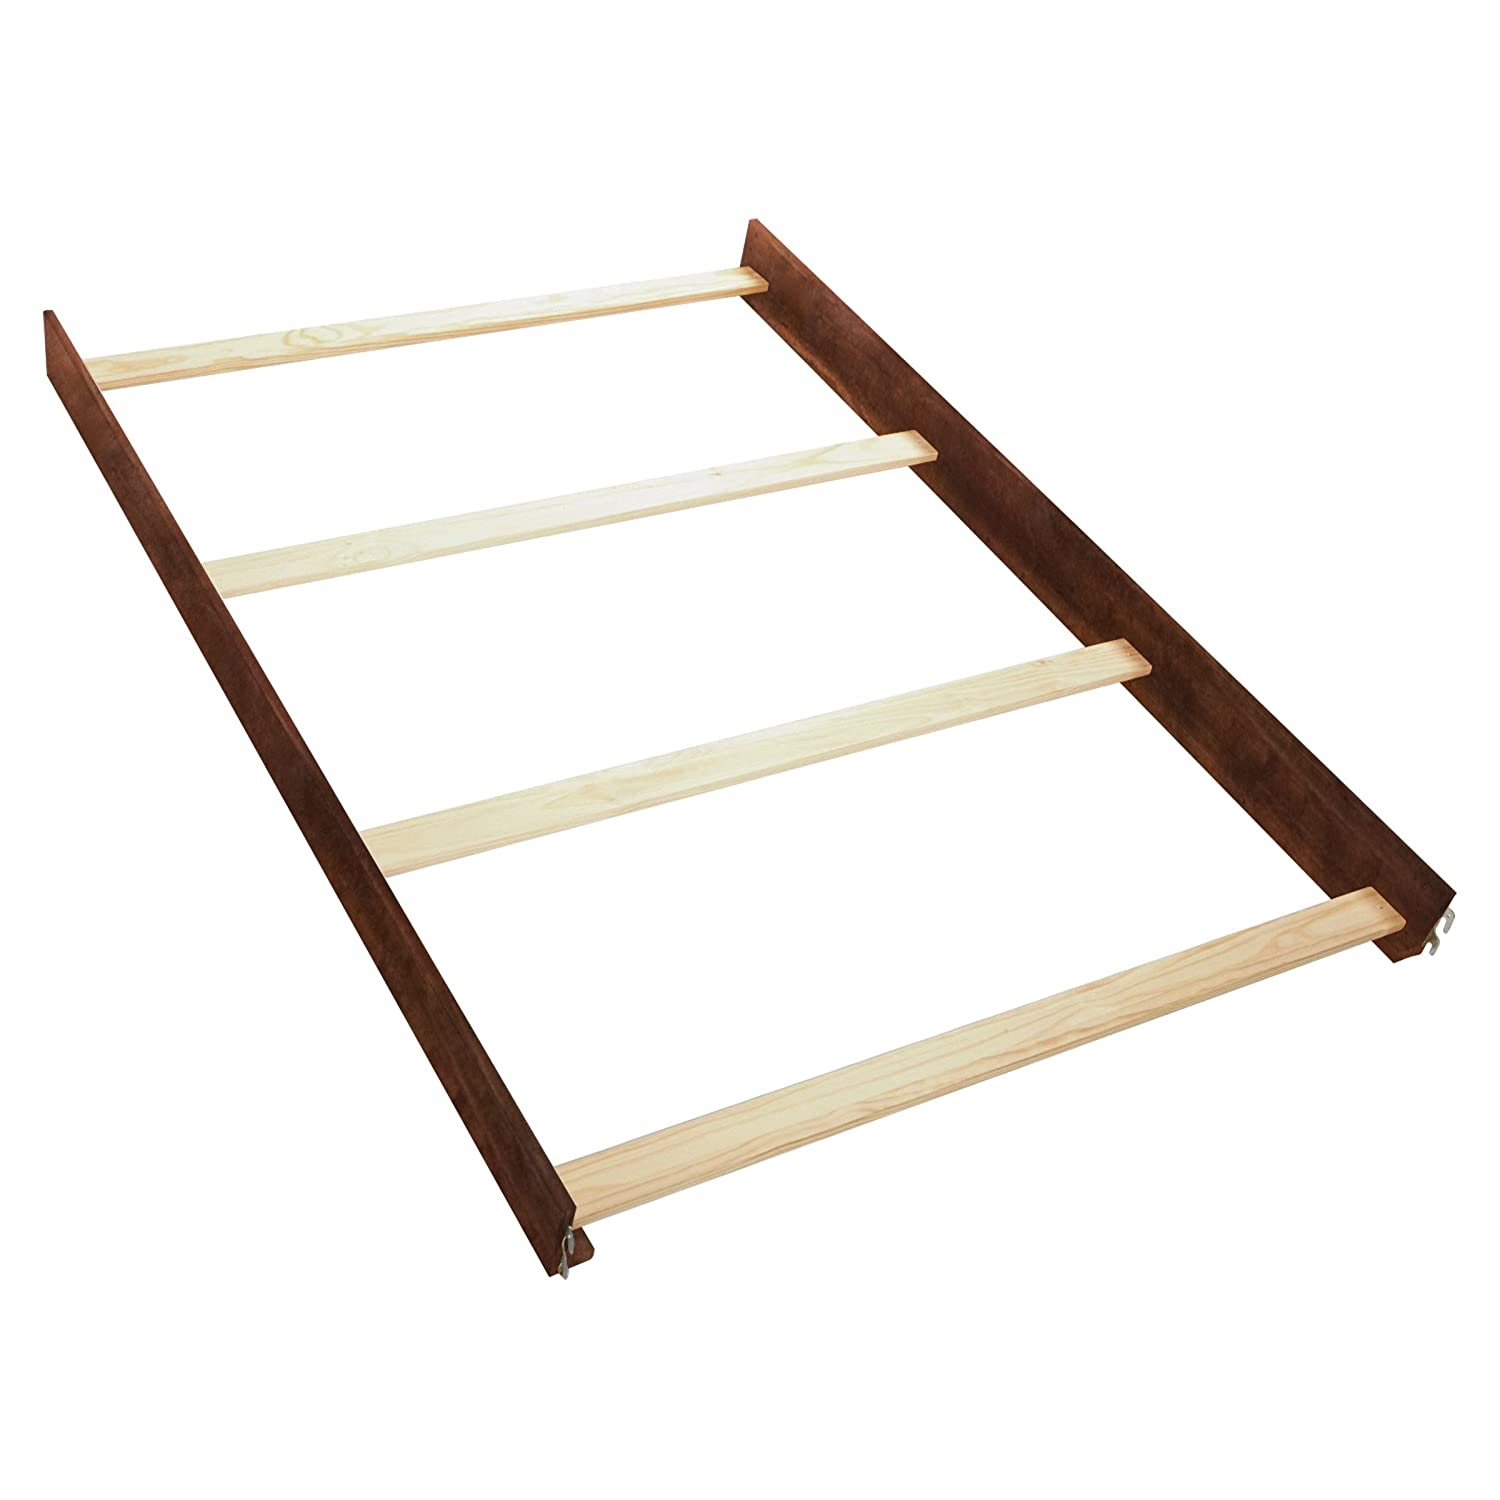 Simmons Kids Full Size Wood Bed Rails, Espresso Truffle 180080-208